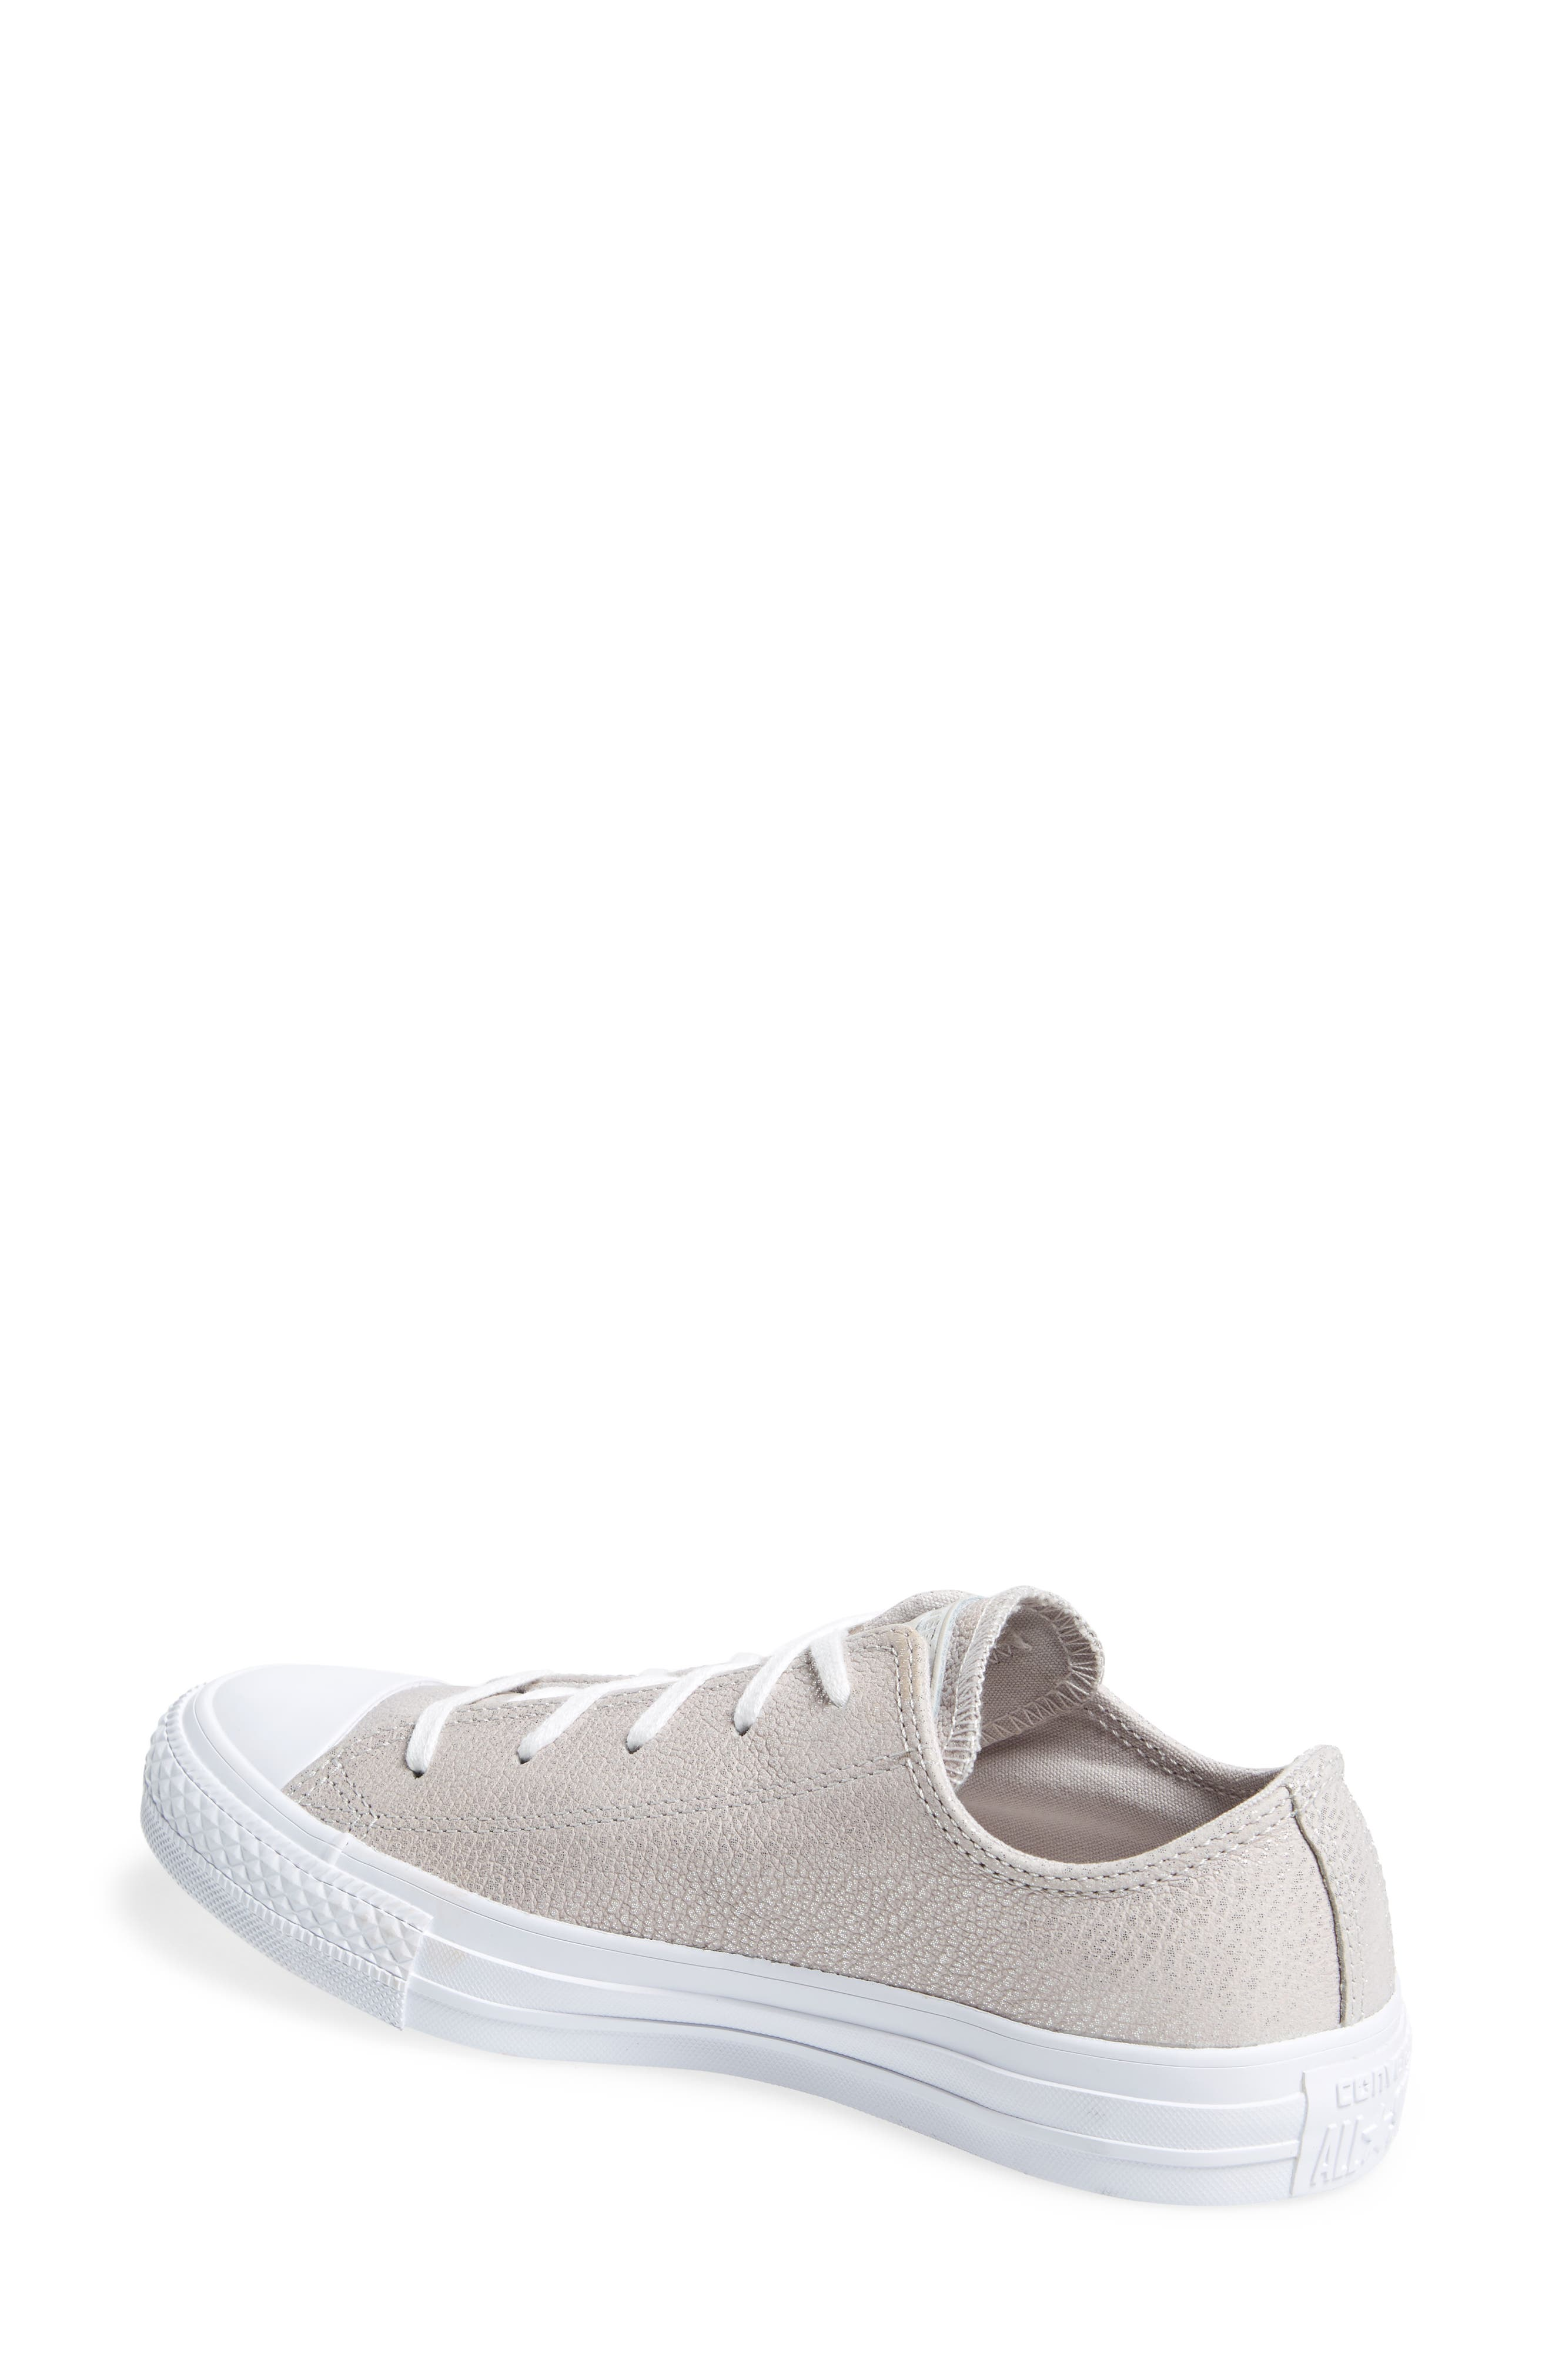 Chuck Taylor<sup>®</sup> All Star<sup>®</sup> Tipped Metallic Low Top Sneaker,                             Alternate thumbnail 2, color,                             Pale Putty